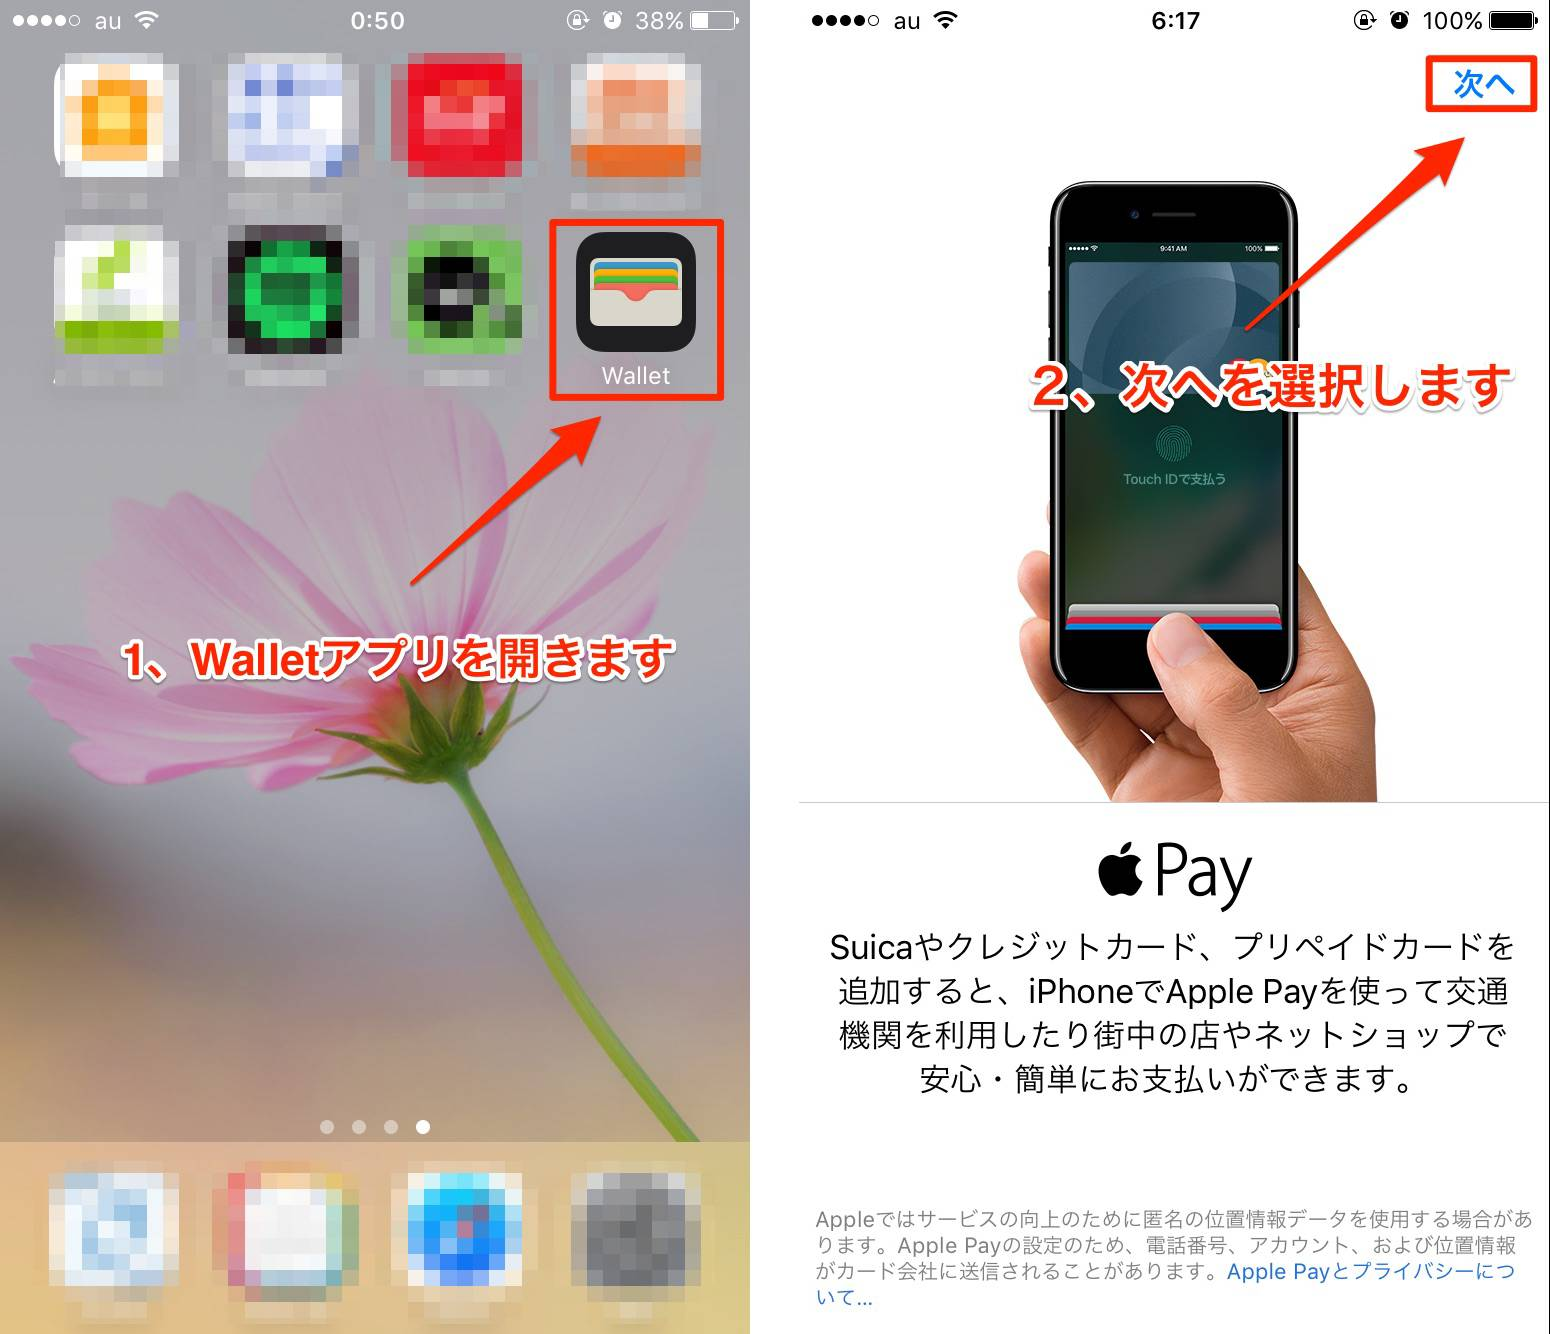 apple-pay%e8%aa%ac%e6%98%8e1